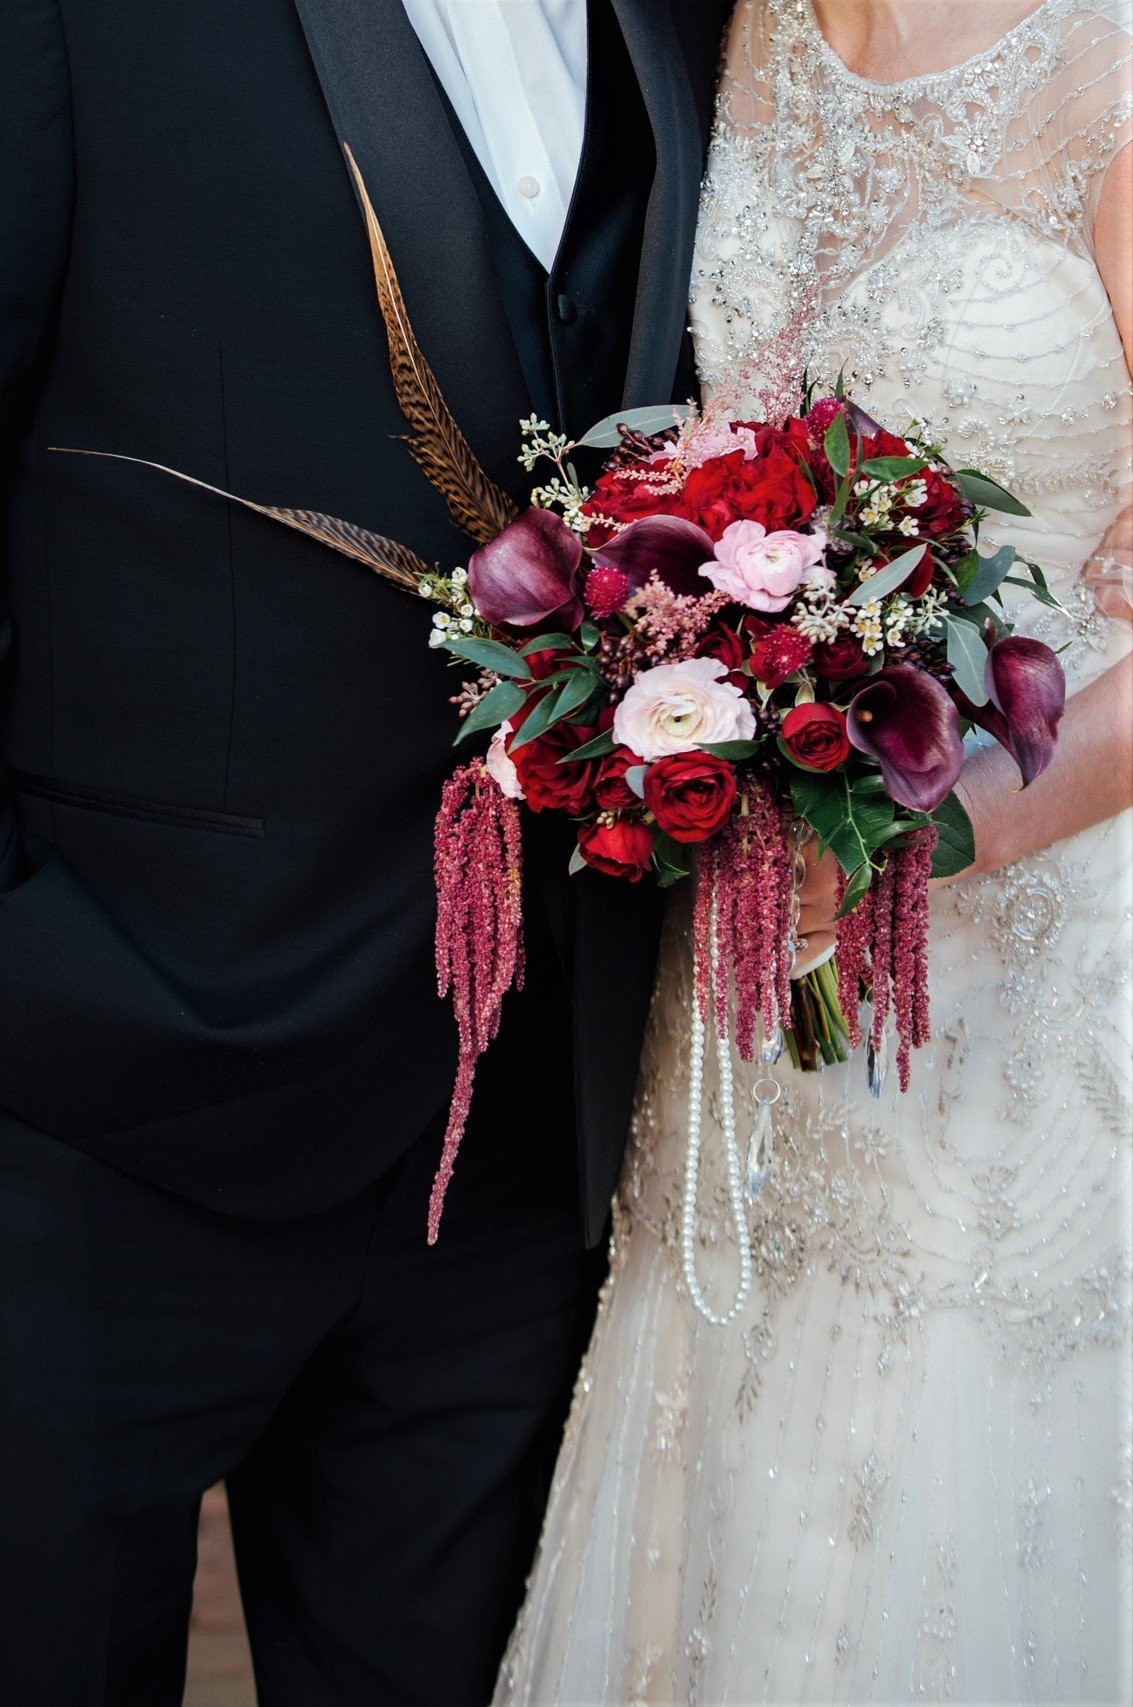 Bridal bouquet with pearls, crystals, and feathers